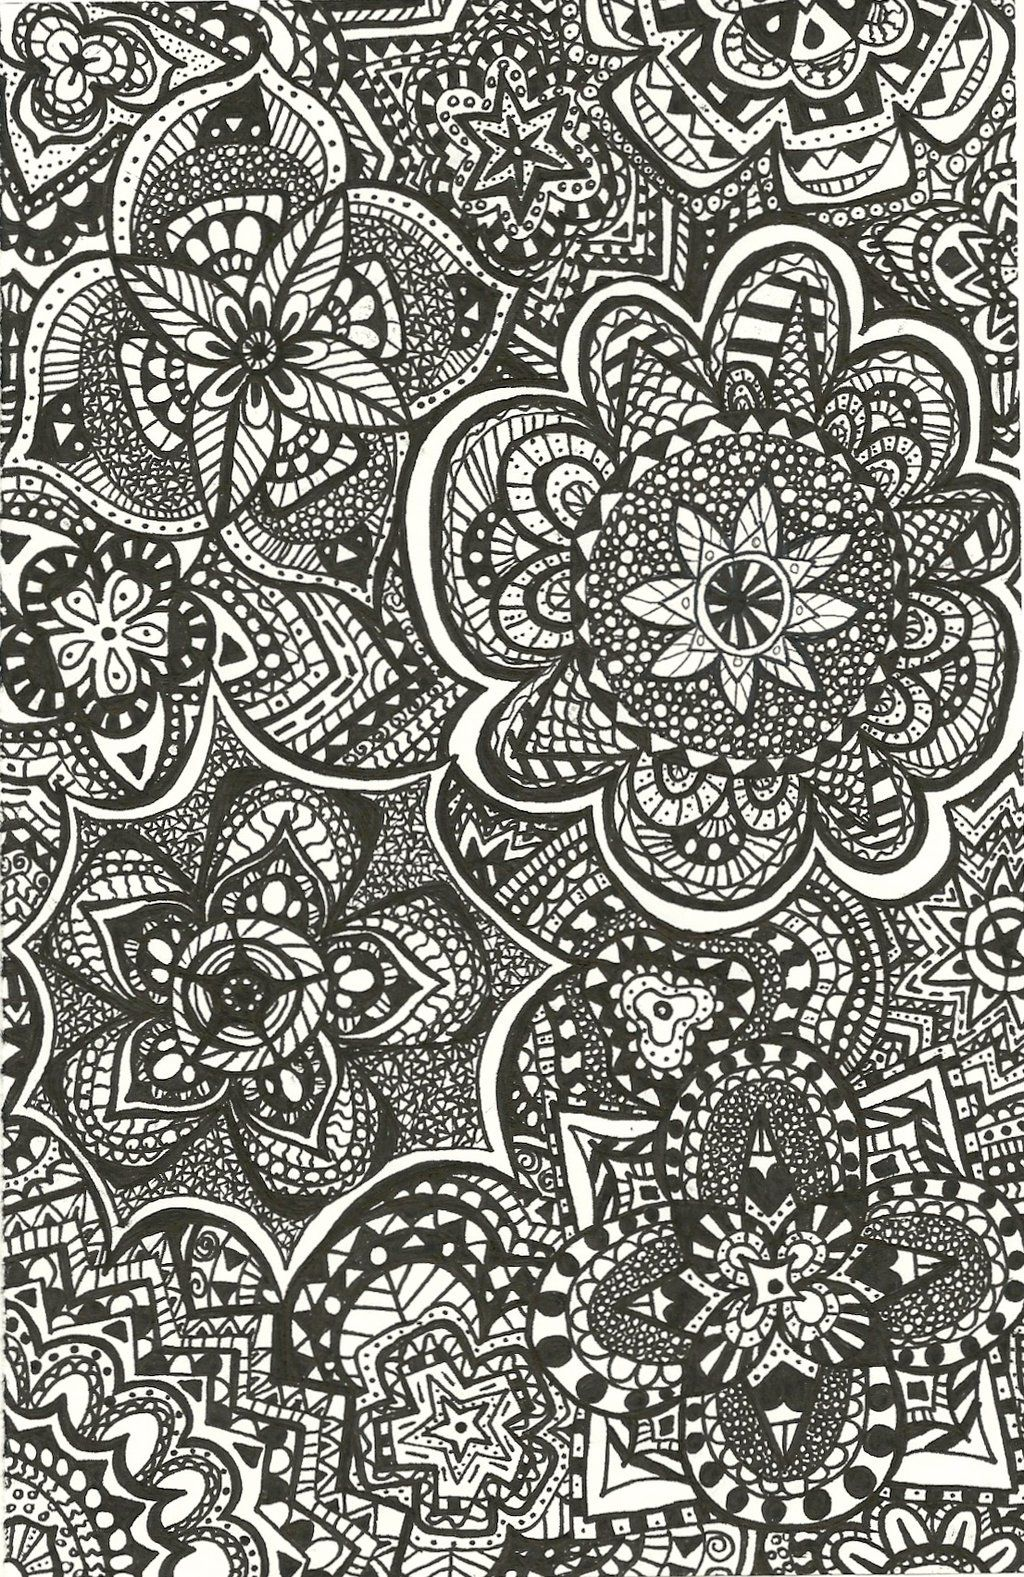 Tumblr Backgrounds Patterns Black And White Buscar Con